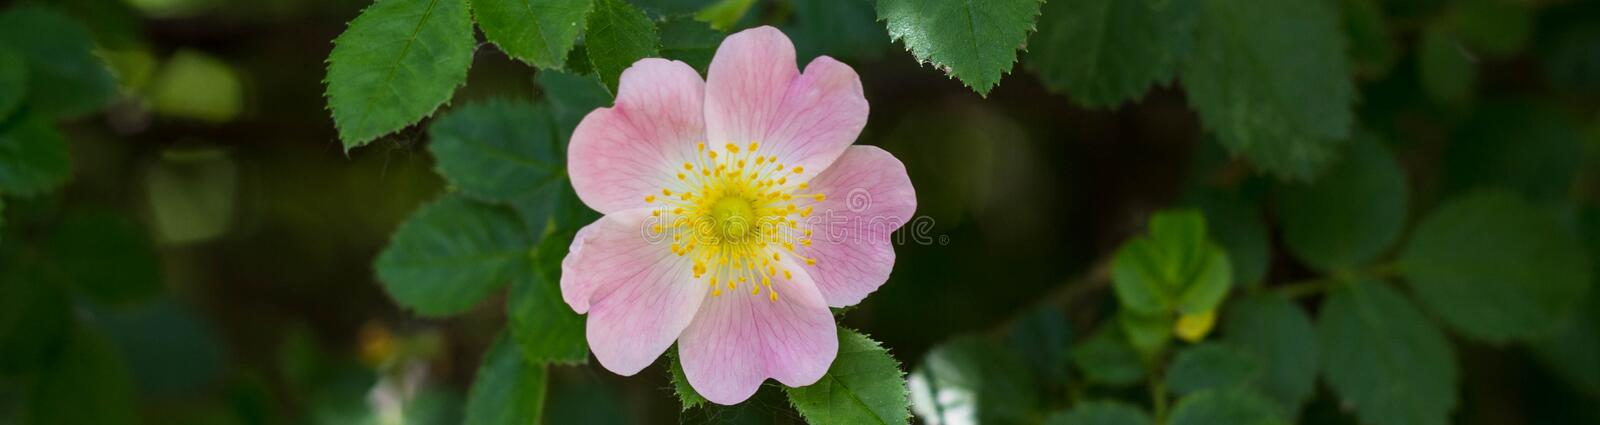 Banner of Close up of a dog rose, Rosa canina, with green leaves in summer royalty free stock image